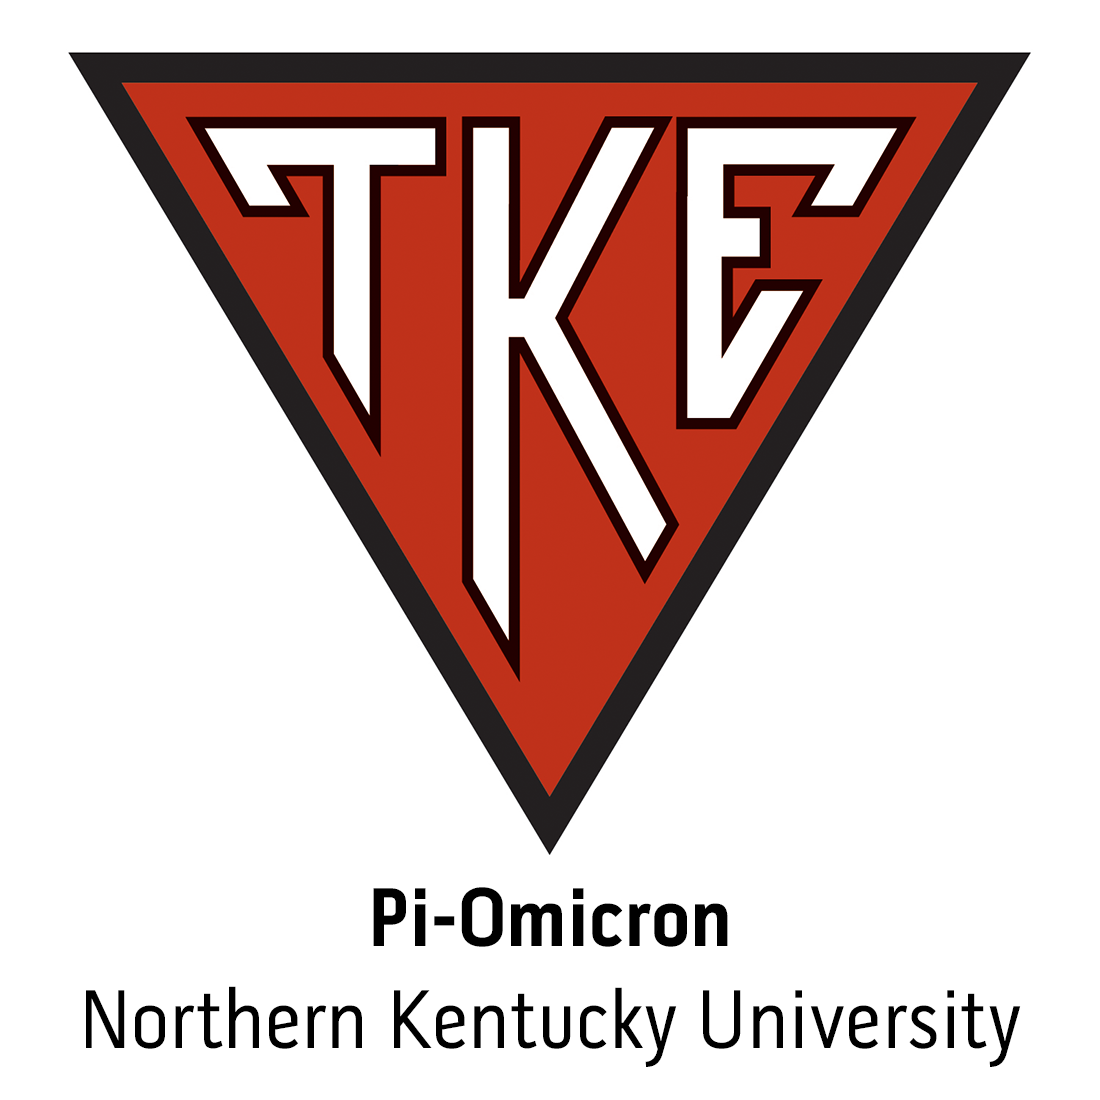 Pi-Omicron Chapter at Northern Kentucky University